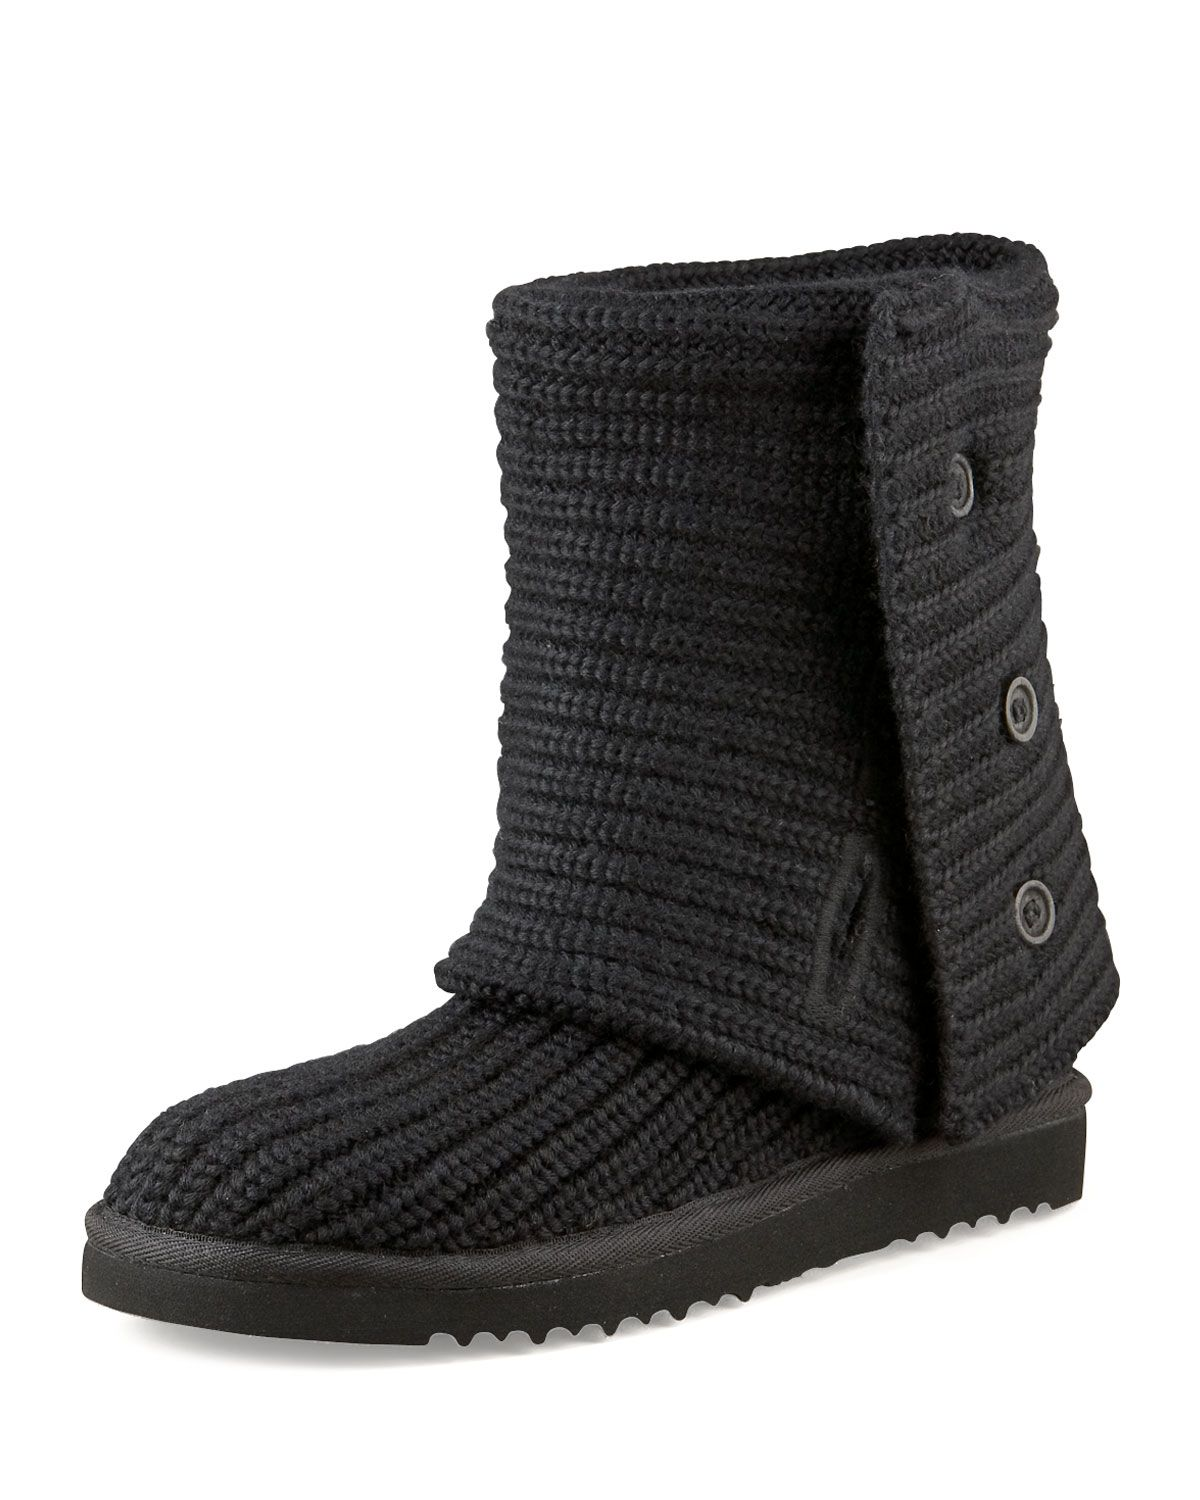 8994a1f754e Crocheted Classic Shearling Boot | *Apparel & Accessories > Shoes ...